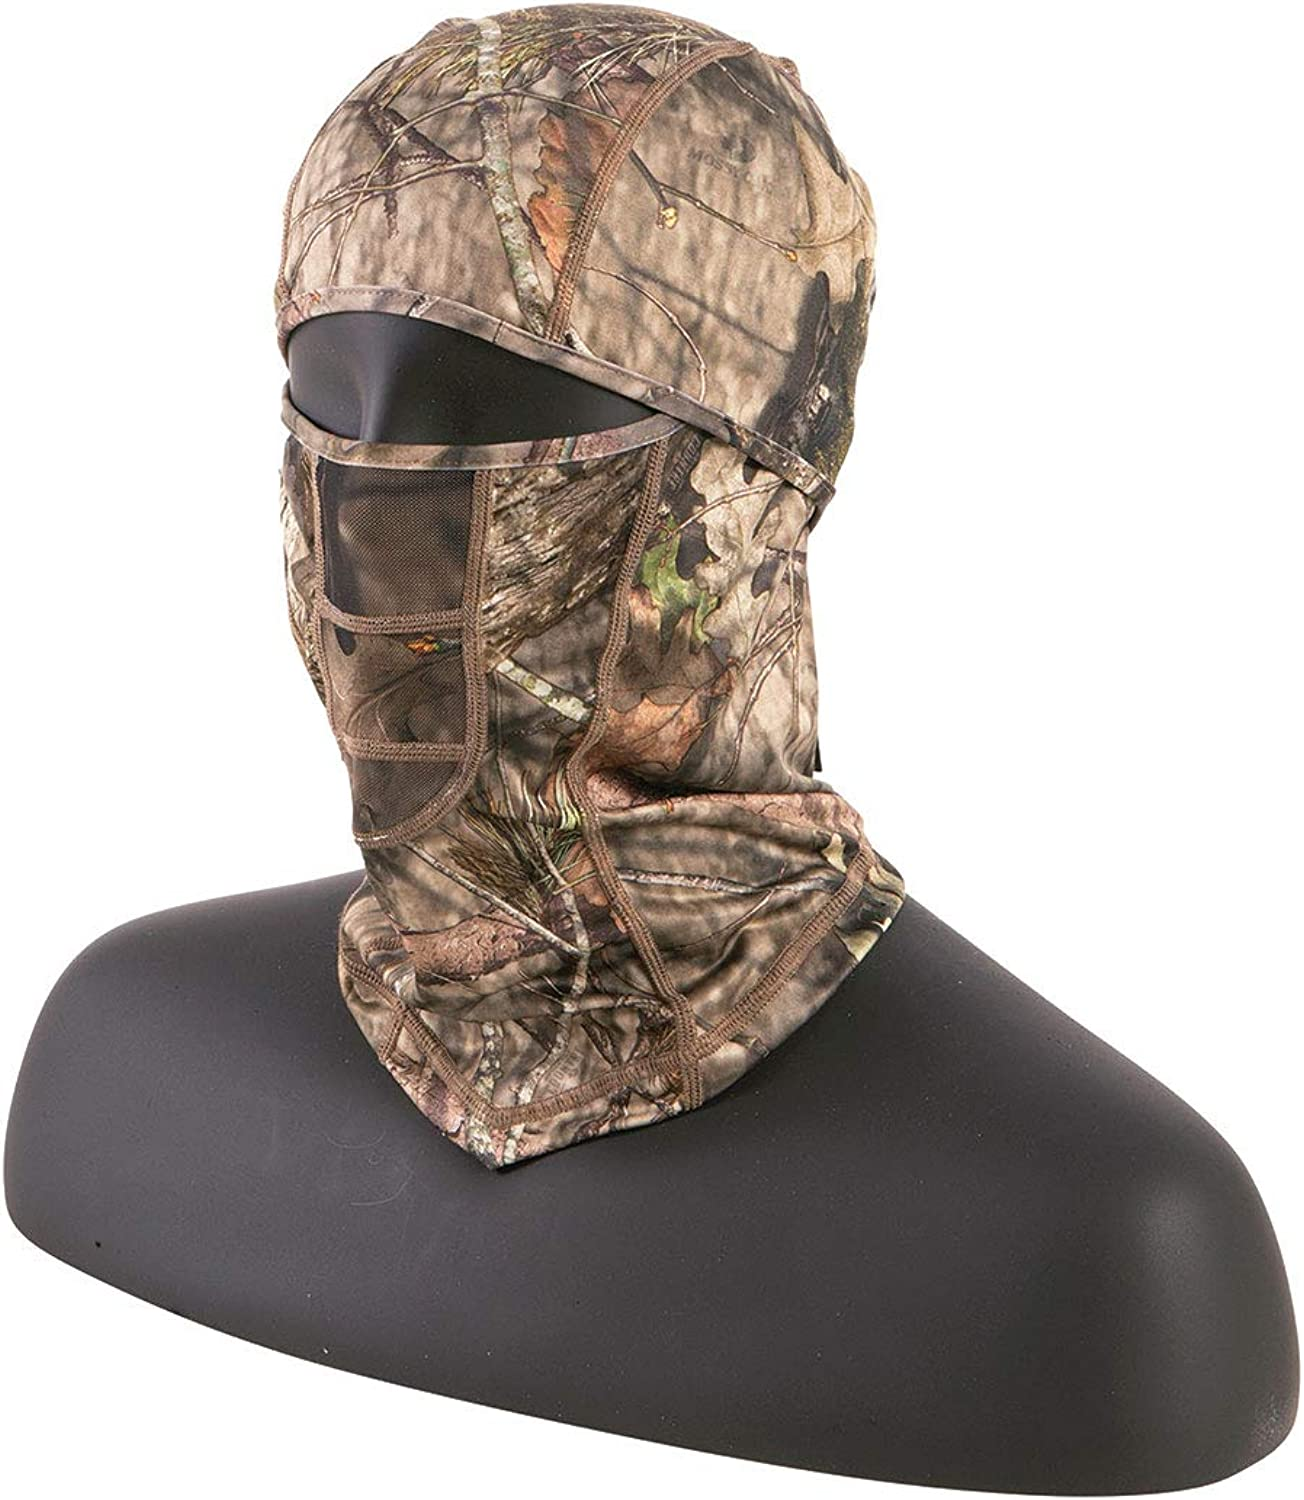 Allen Company Camo Balaclava Face Mask with Mesh - Mossy Oak Break-Up Country